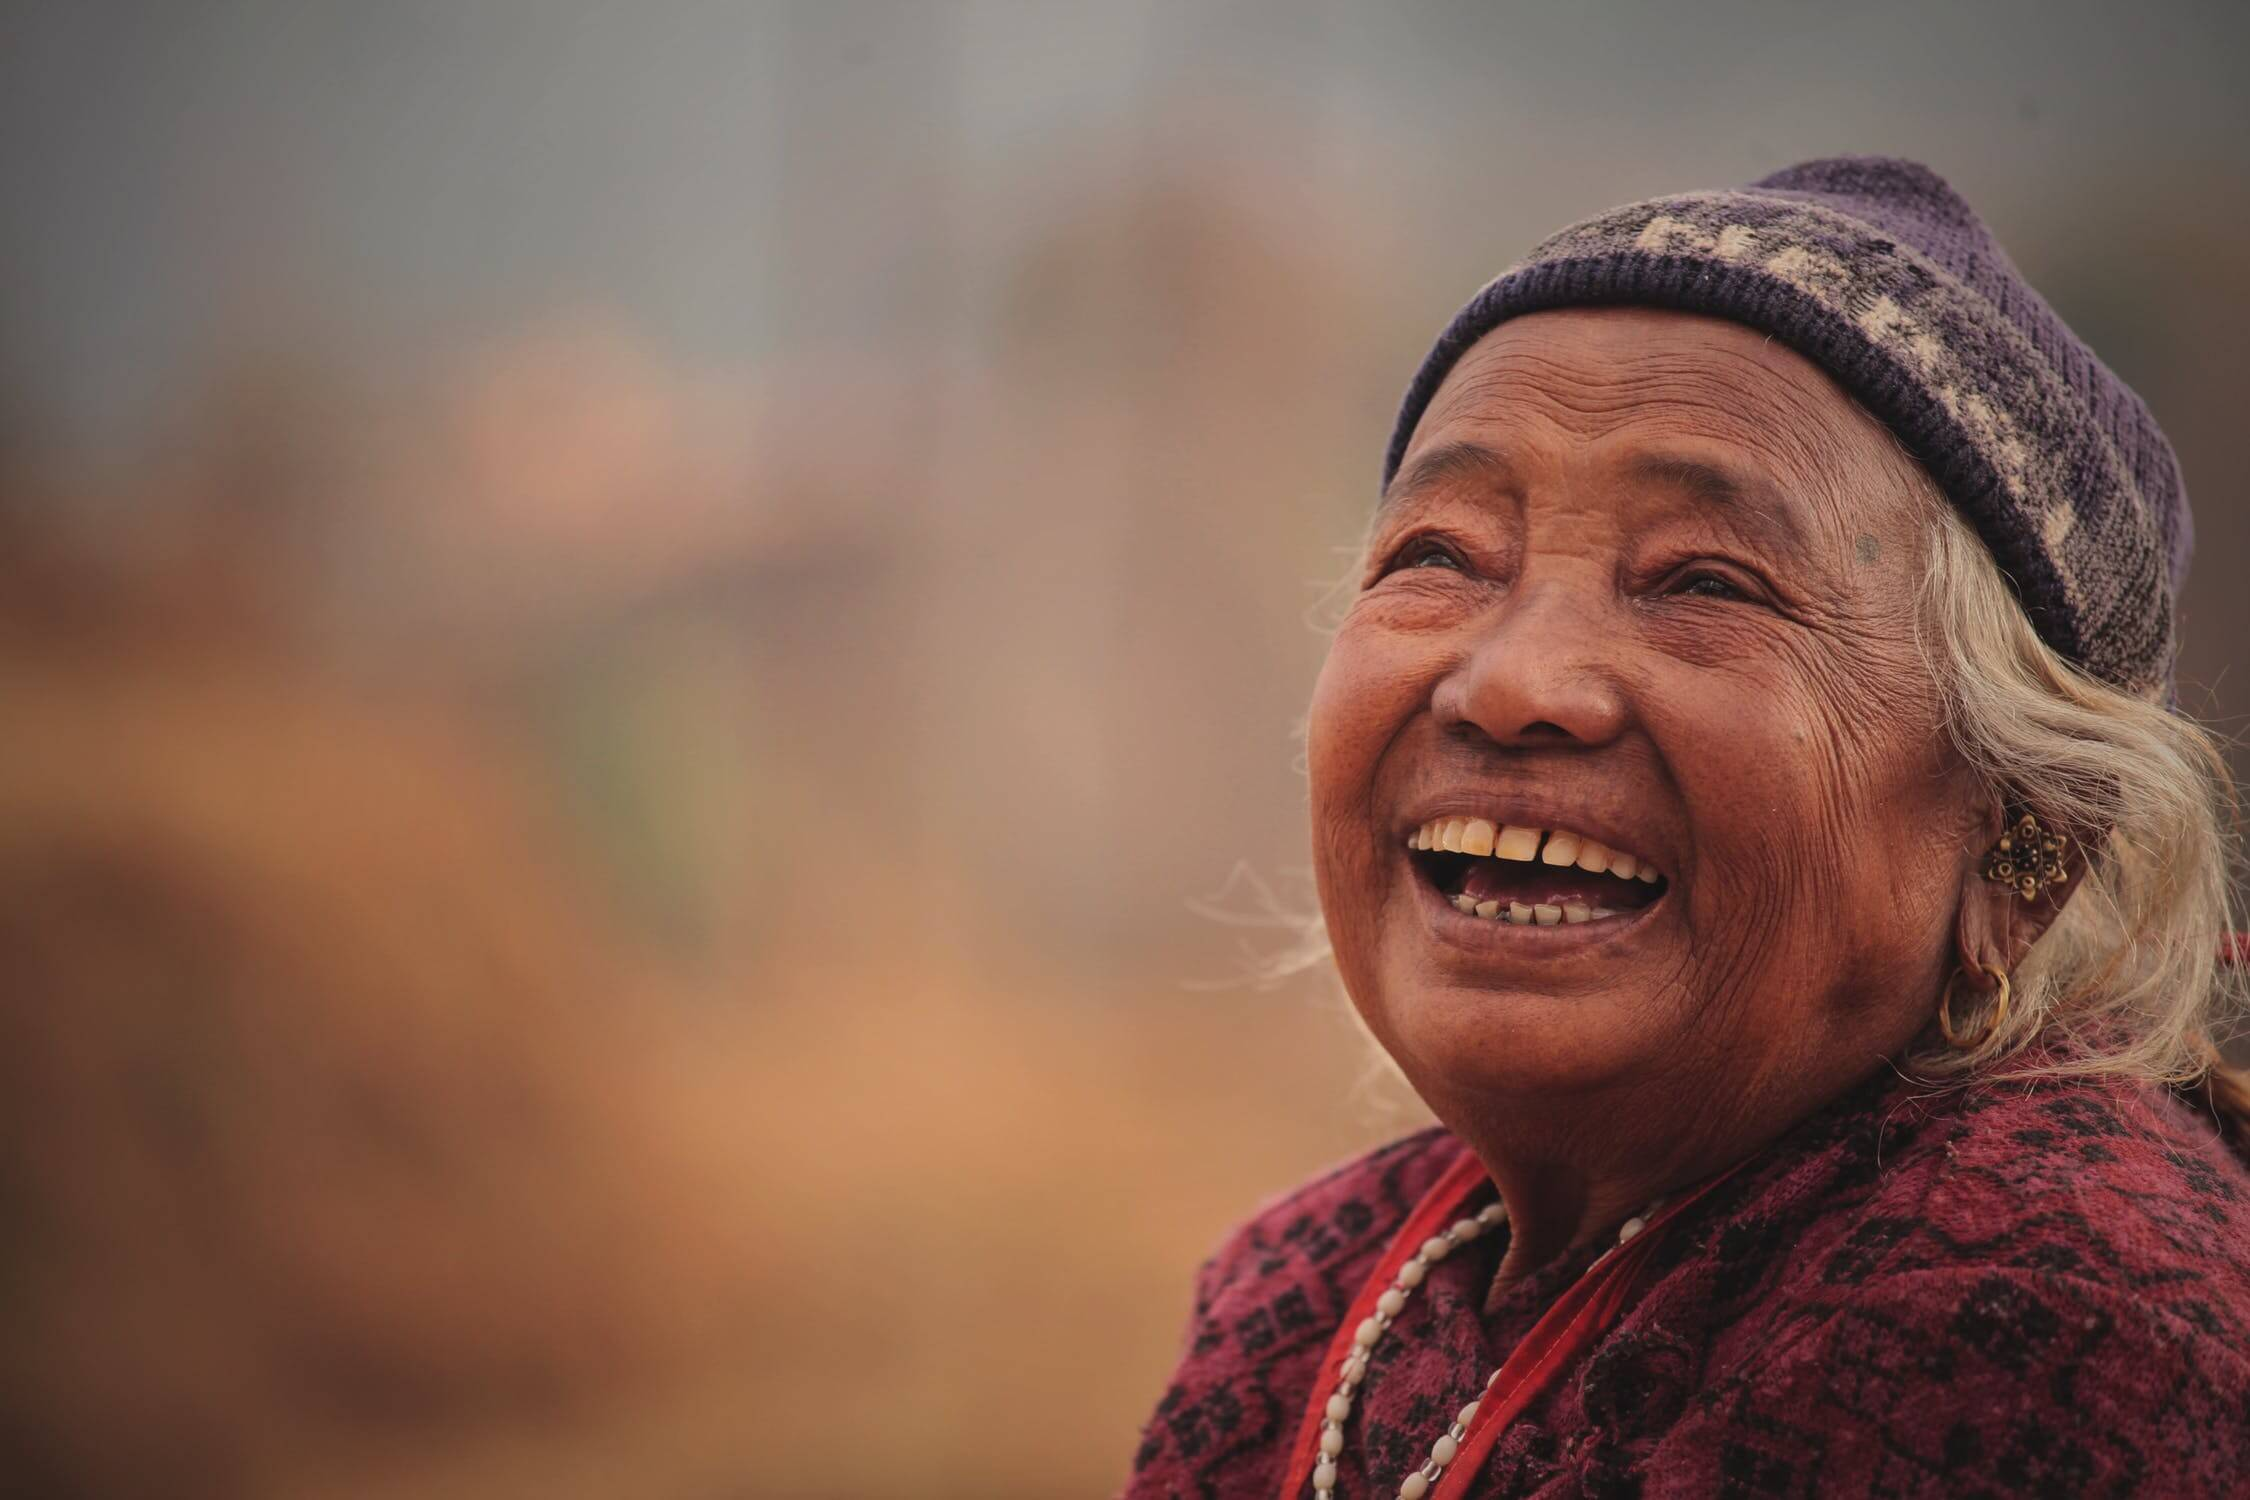 An older woman smiling thinking about senior living